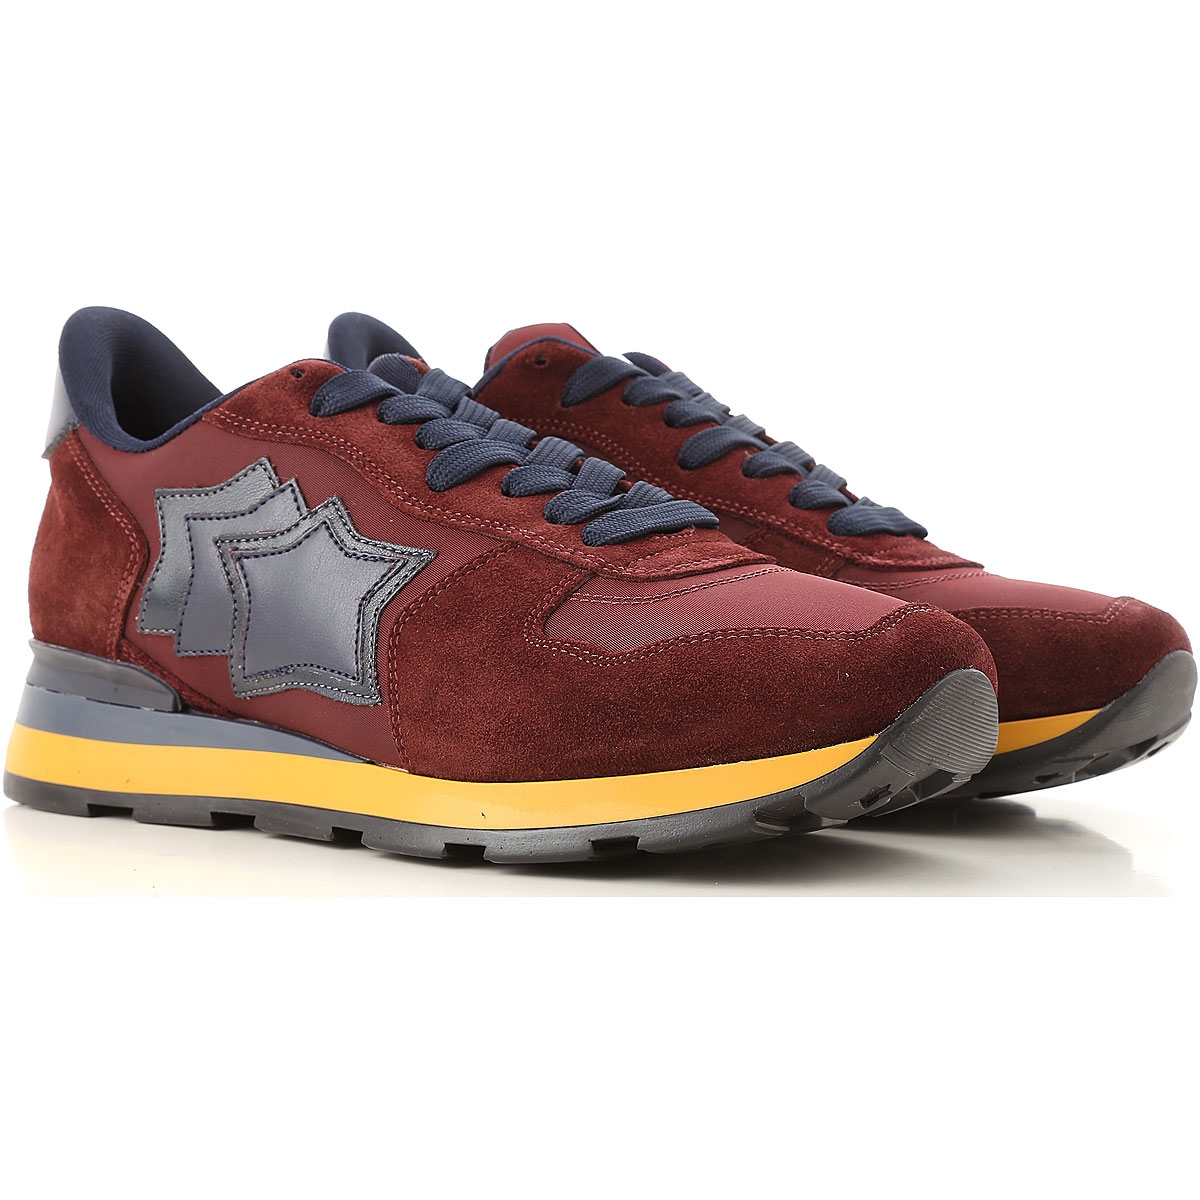 Image of Atlantic Stars Sneakers for Men, Bordeaux, Suede leather, 2017, 10 10.5 7.5 8 9